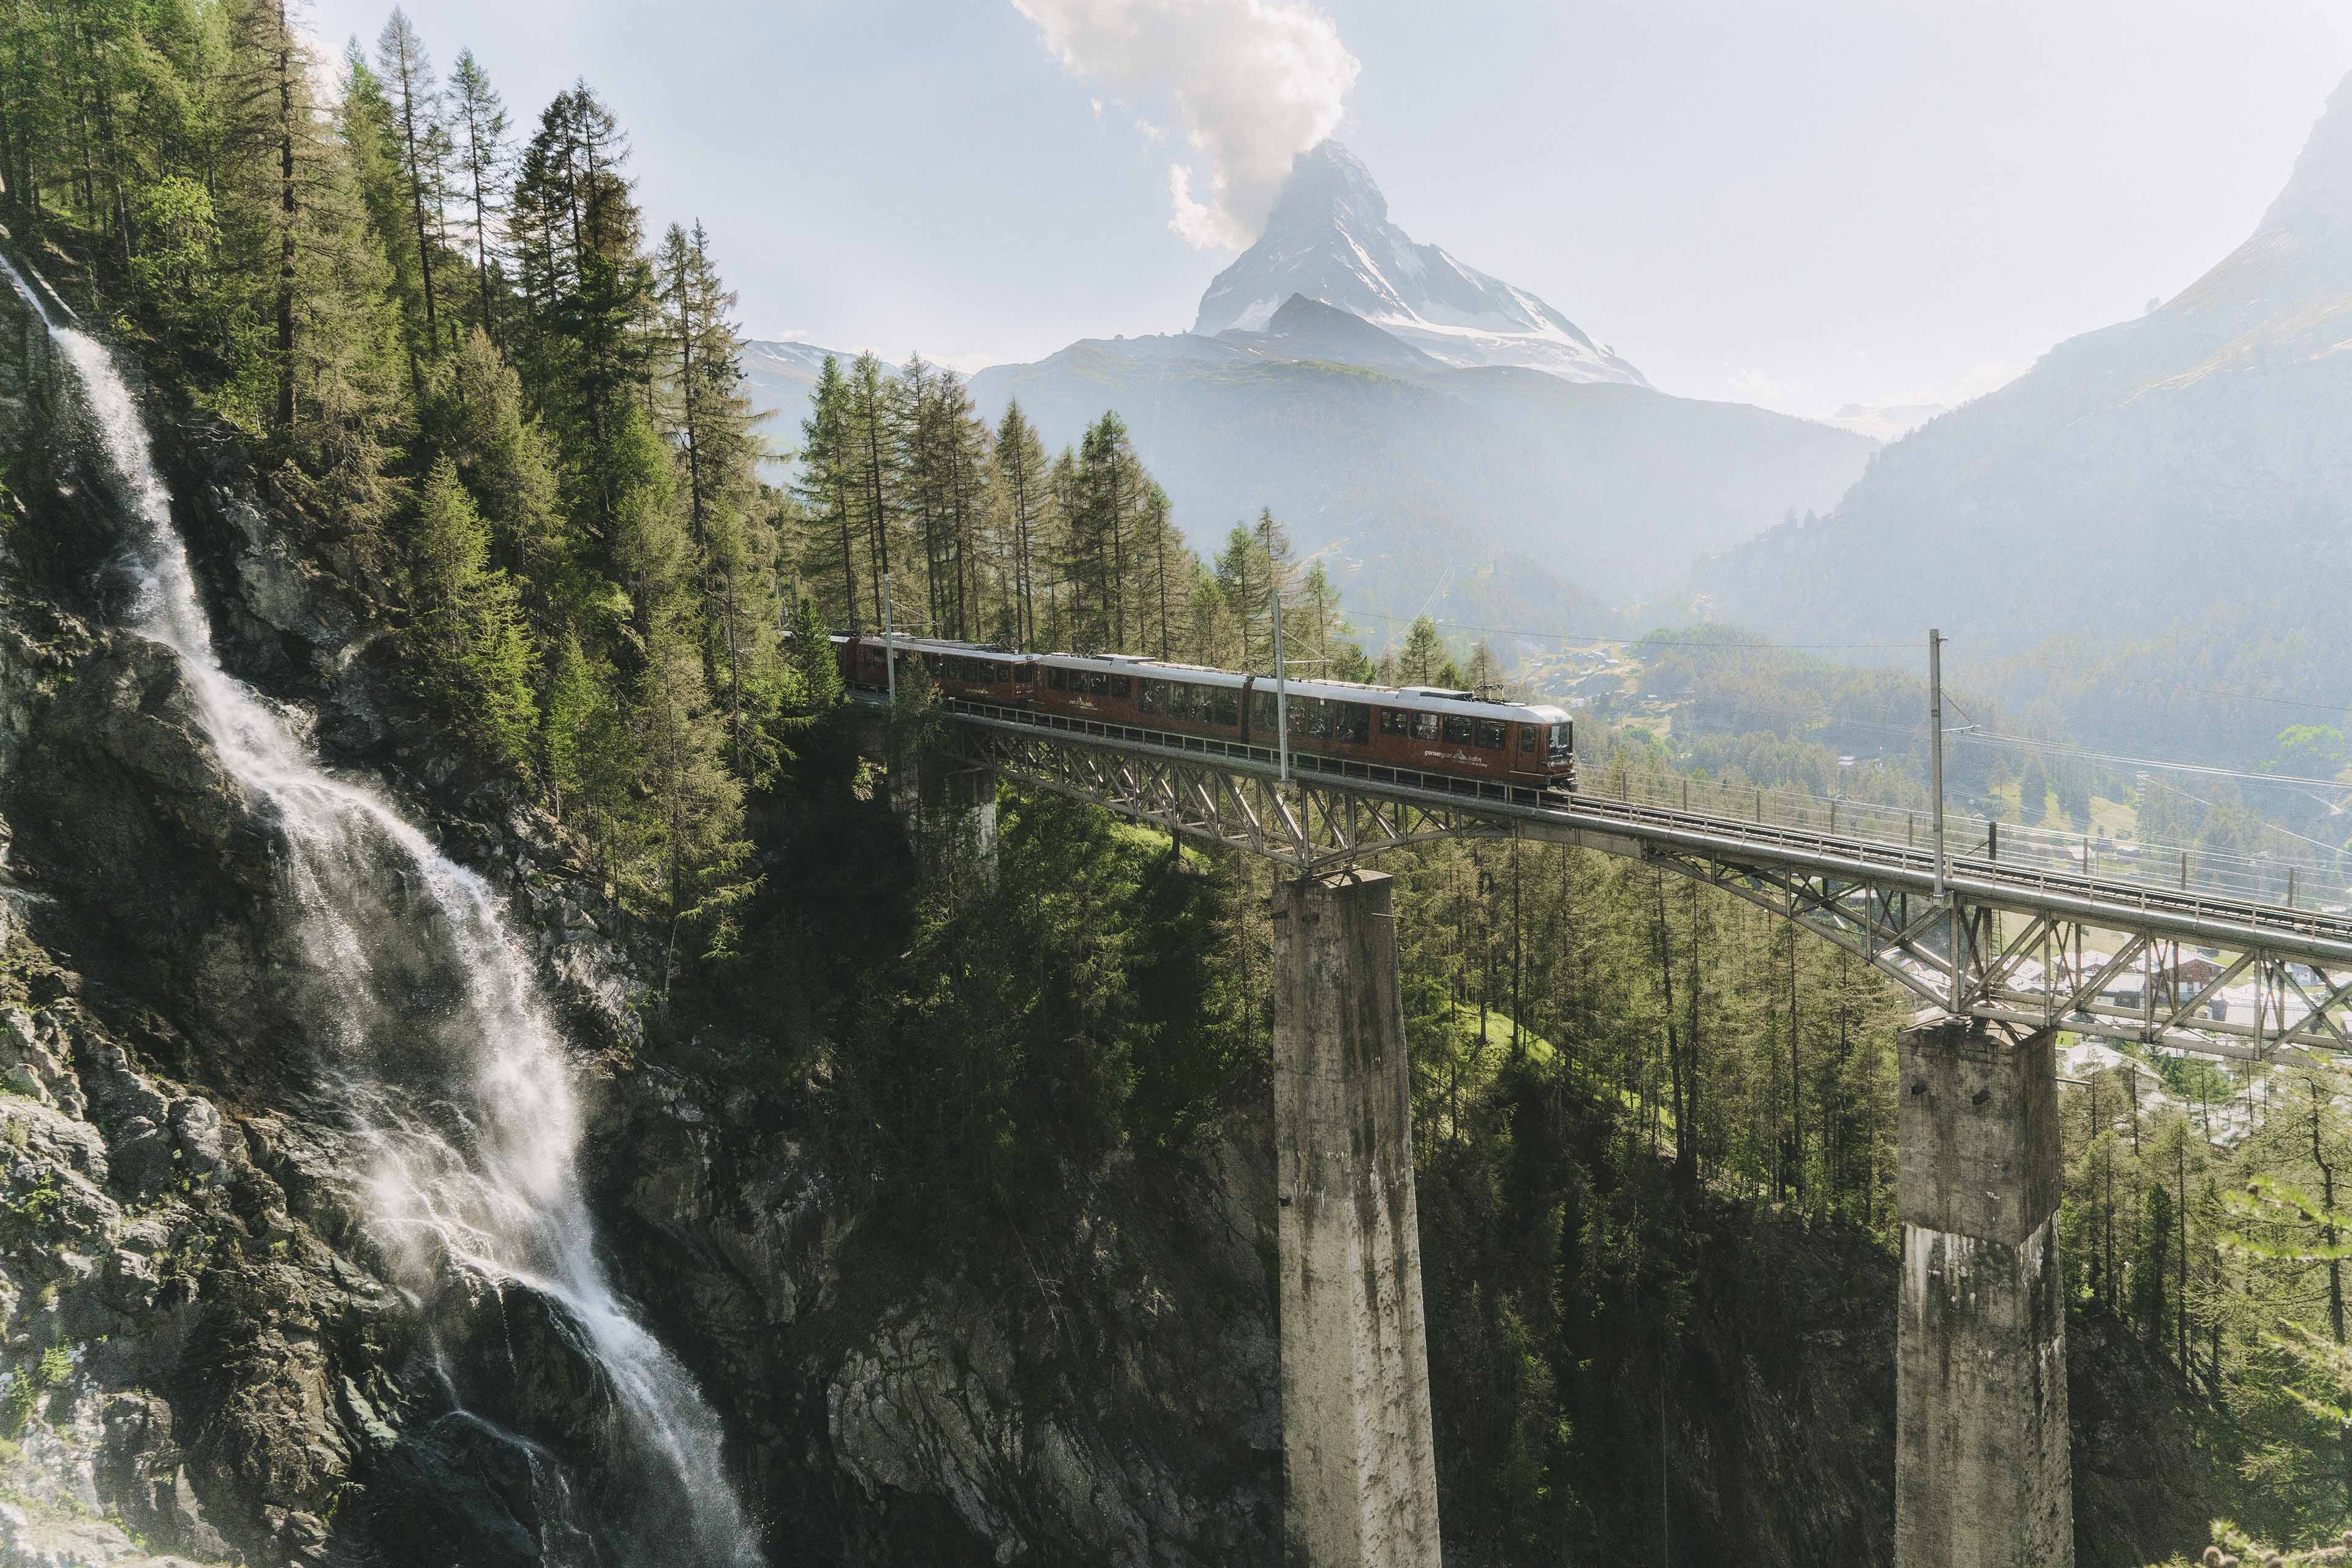 Scenic view of train with mountain background